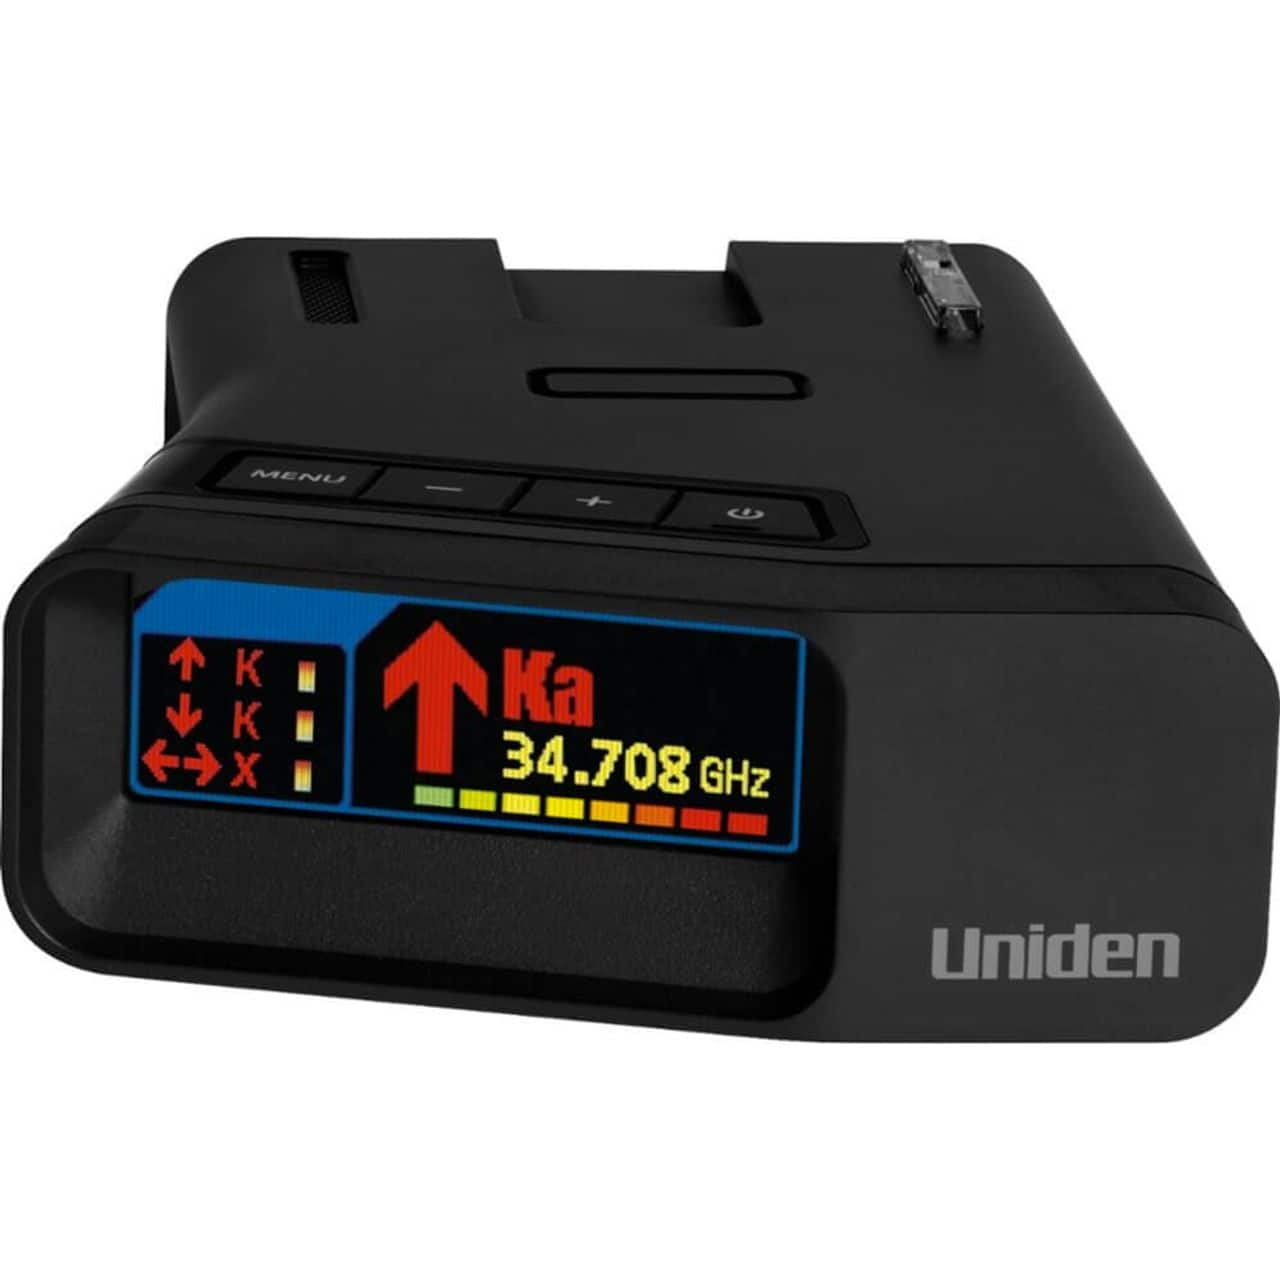 Uniden R7 Long Range Laser & Radar Detector with Arrow Alert – $444 + Free Shipping